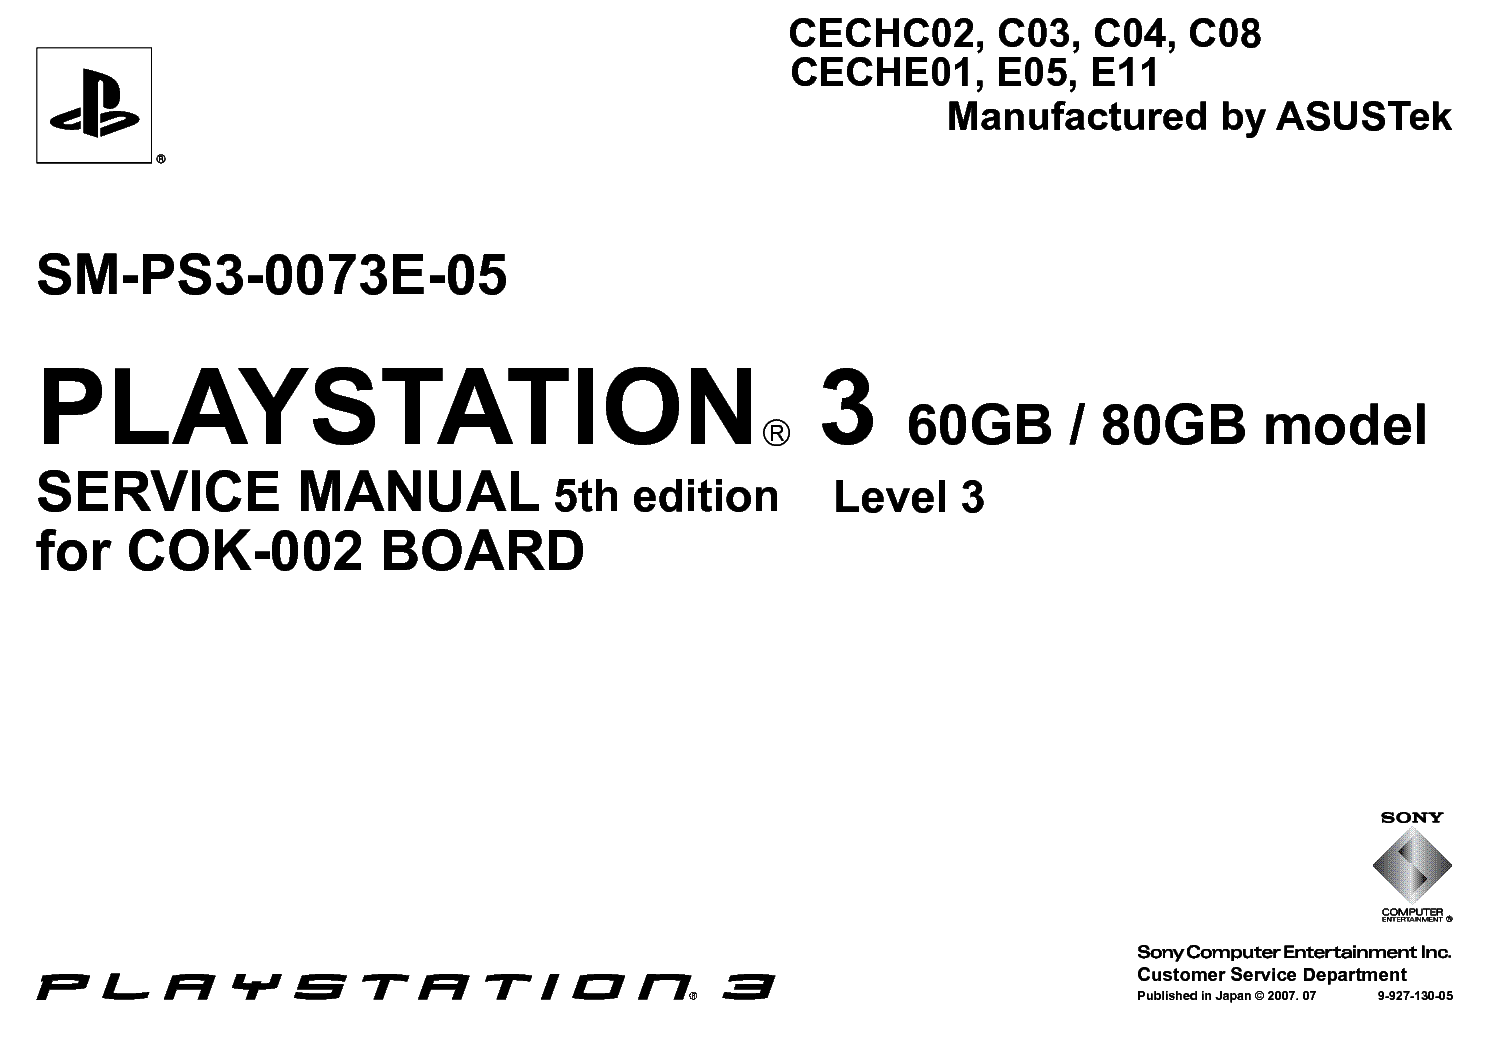 sony playstation 3 cechc02 cechc03 cechc04 cechc08 ceche01 ceche05 rh elektrotanya com sony ps3 user manual pdf Sony Manuals PDF